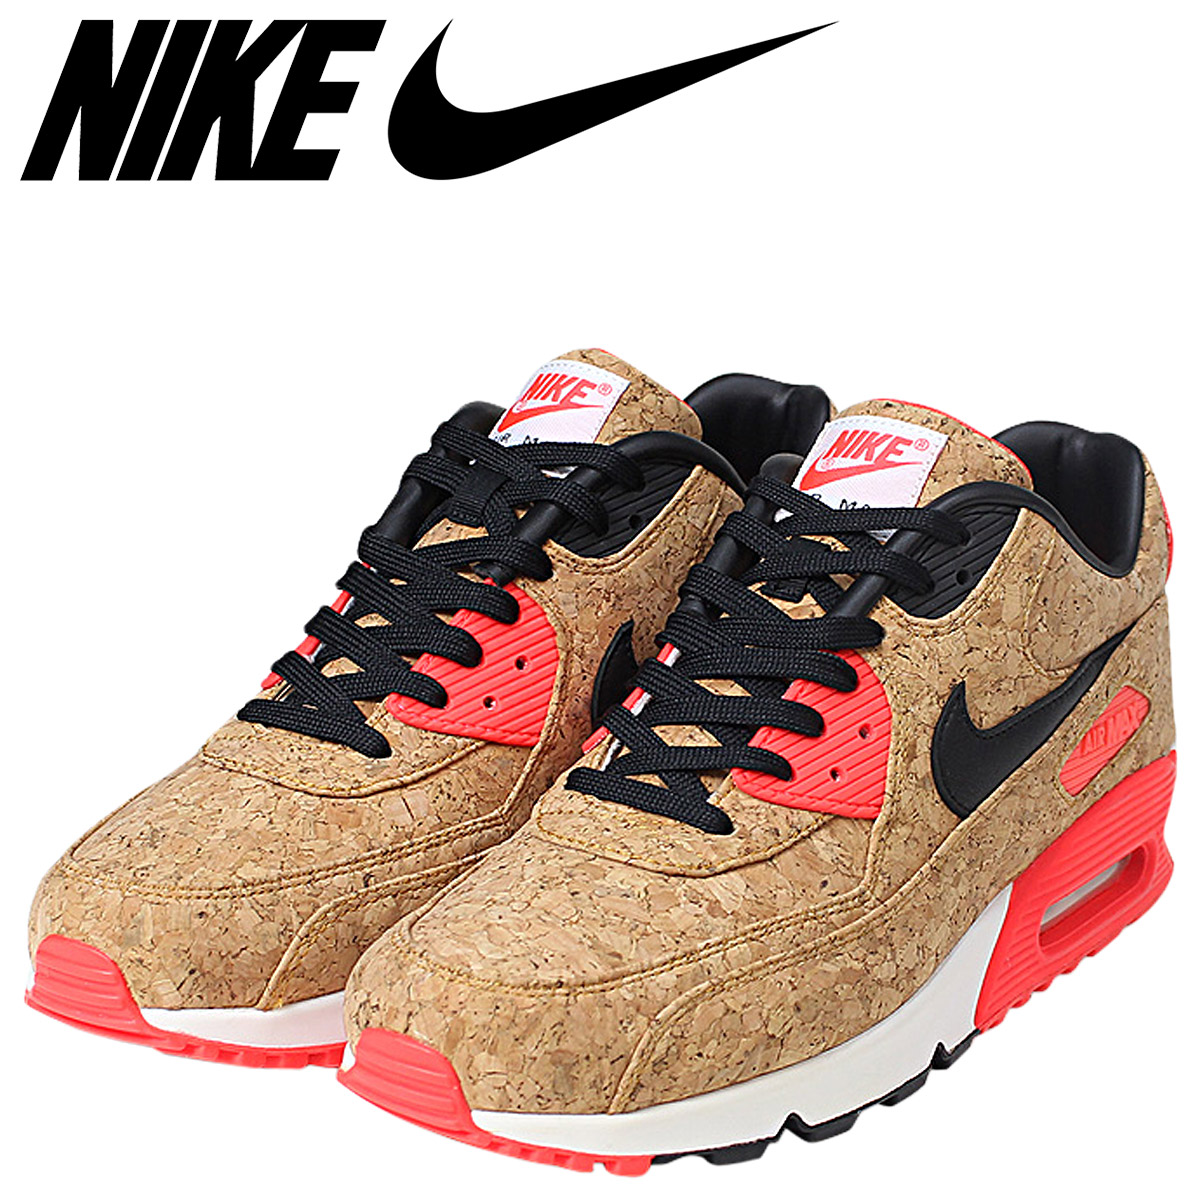 Acquista nike air max 90 shop online - OFF77% sconti d6d144141e2